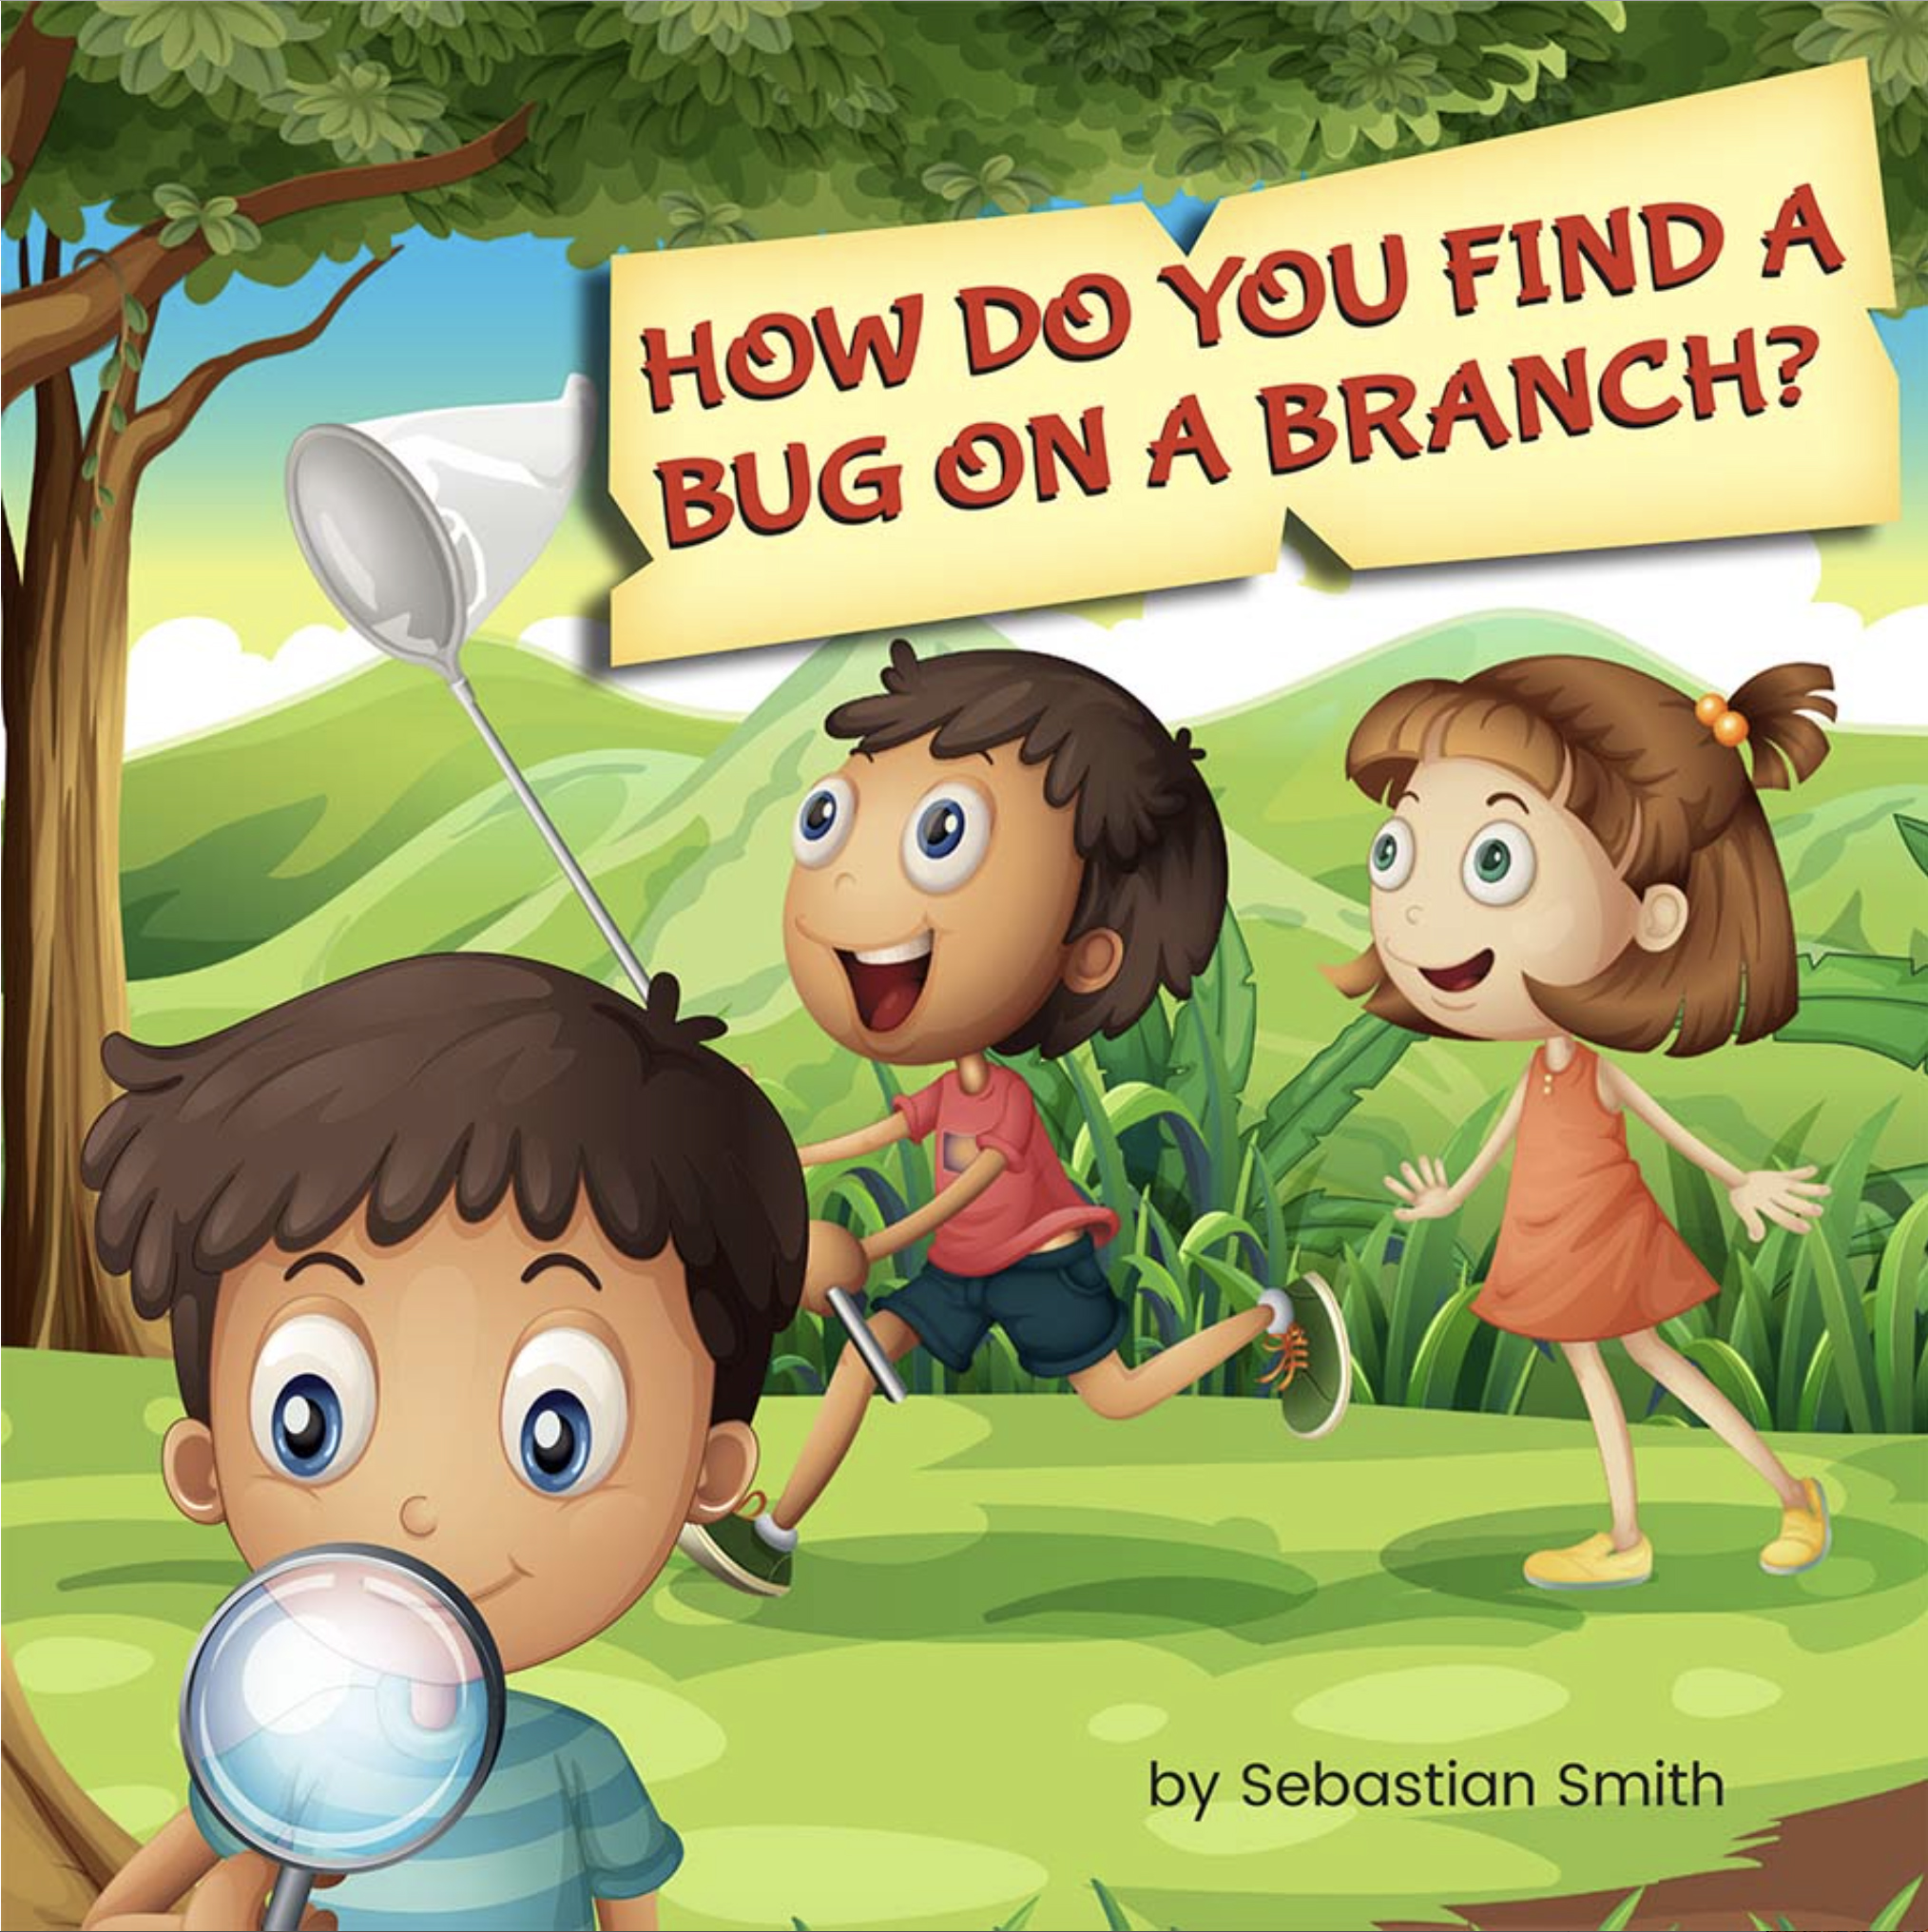 How Do You Find A Bug on A Branch?